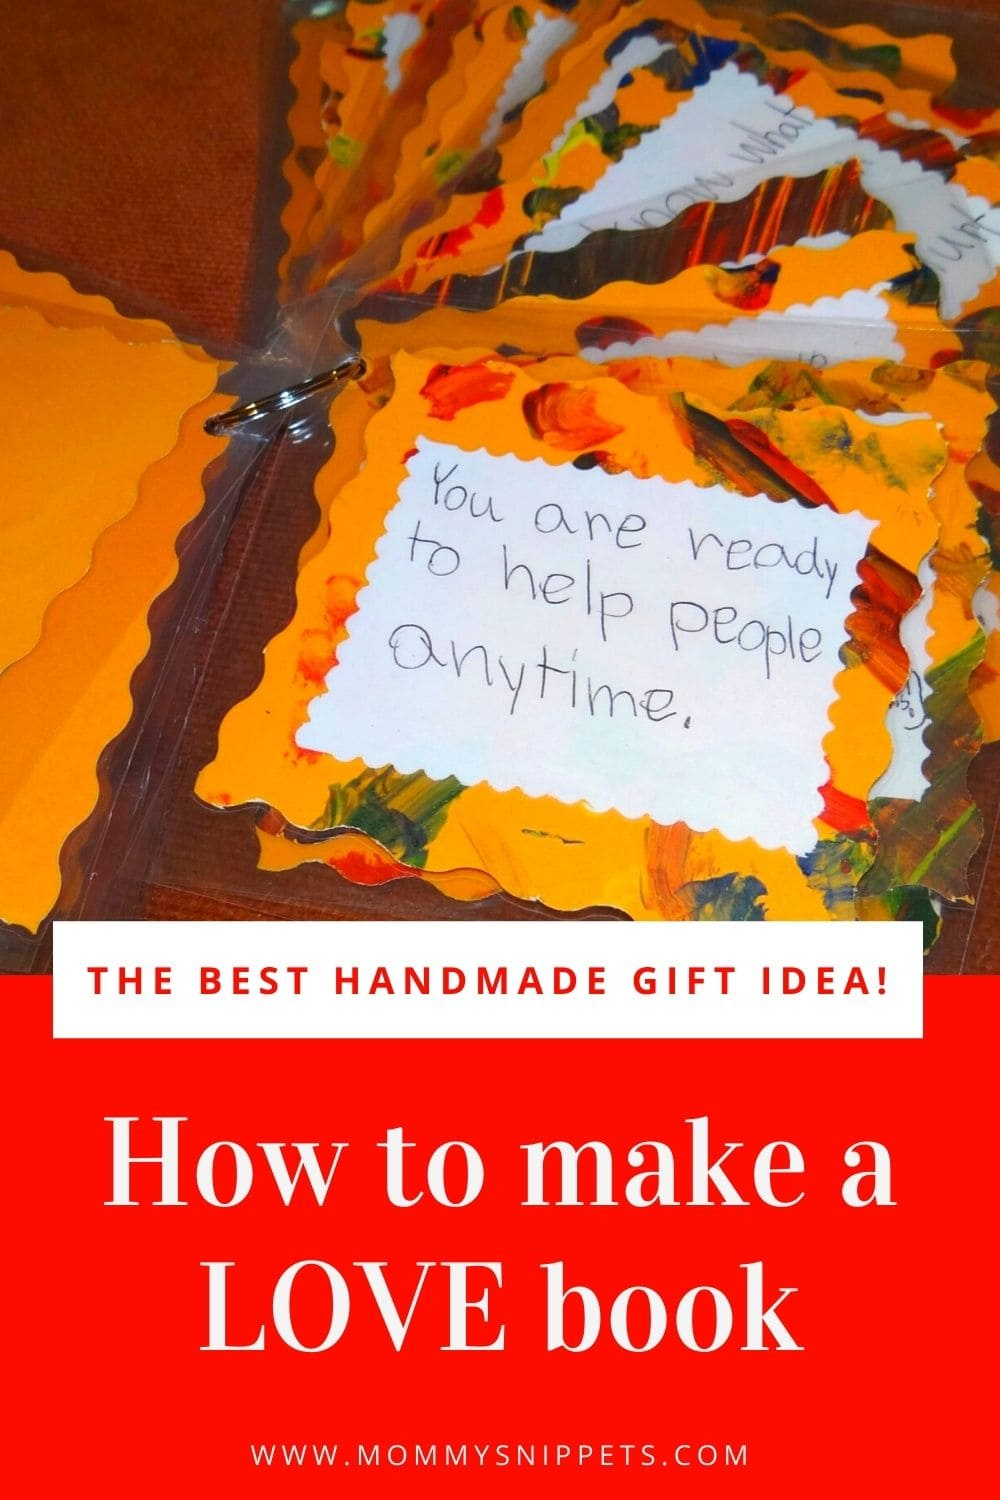 How to Make a Love Book -An Easy Handmade Gift Idea for Kids